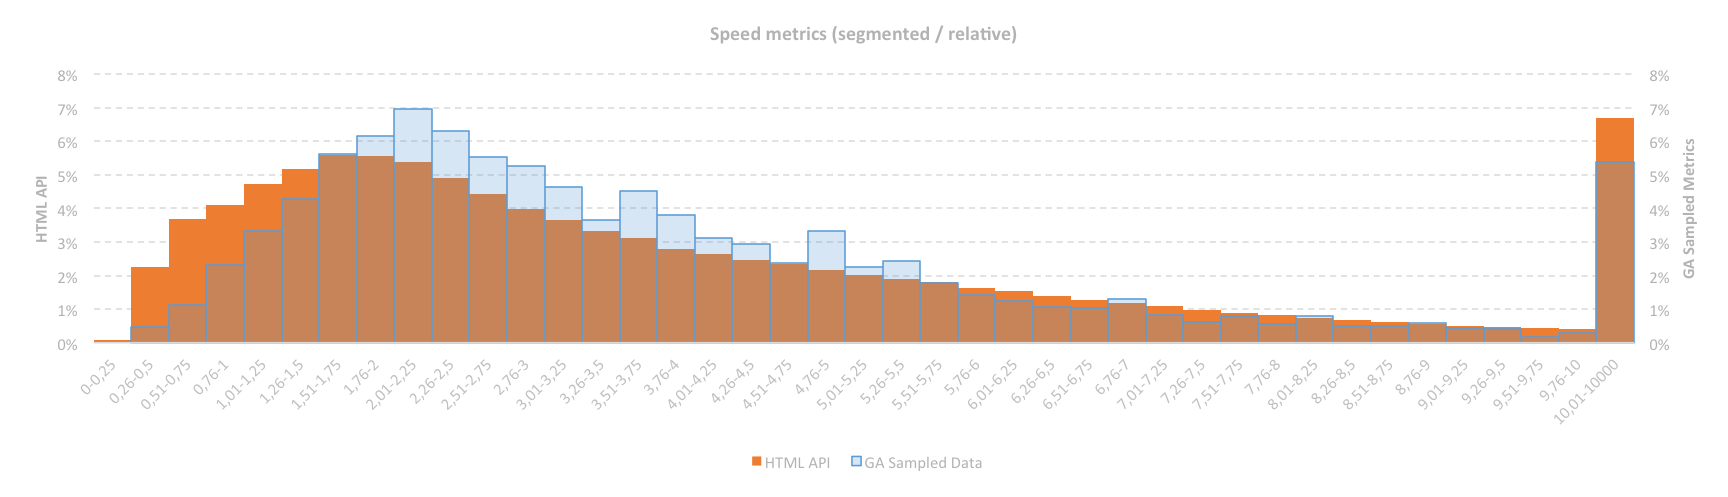 Speed Metrics Segemented Rellative